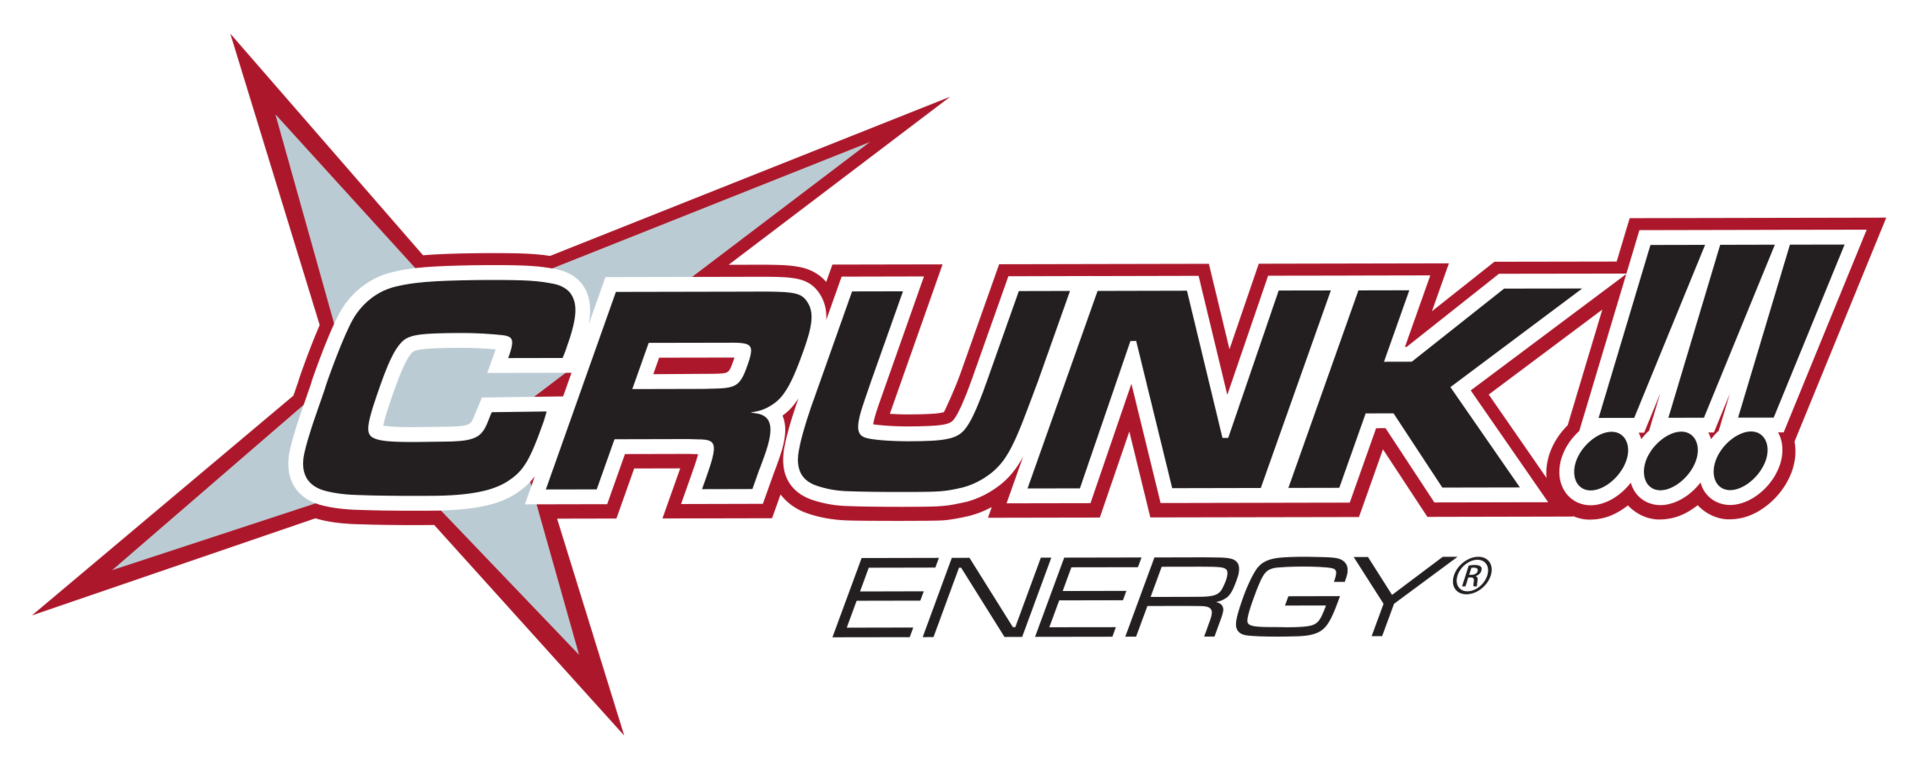 Lost Energy Drink Wiki